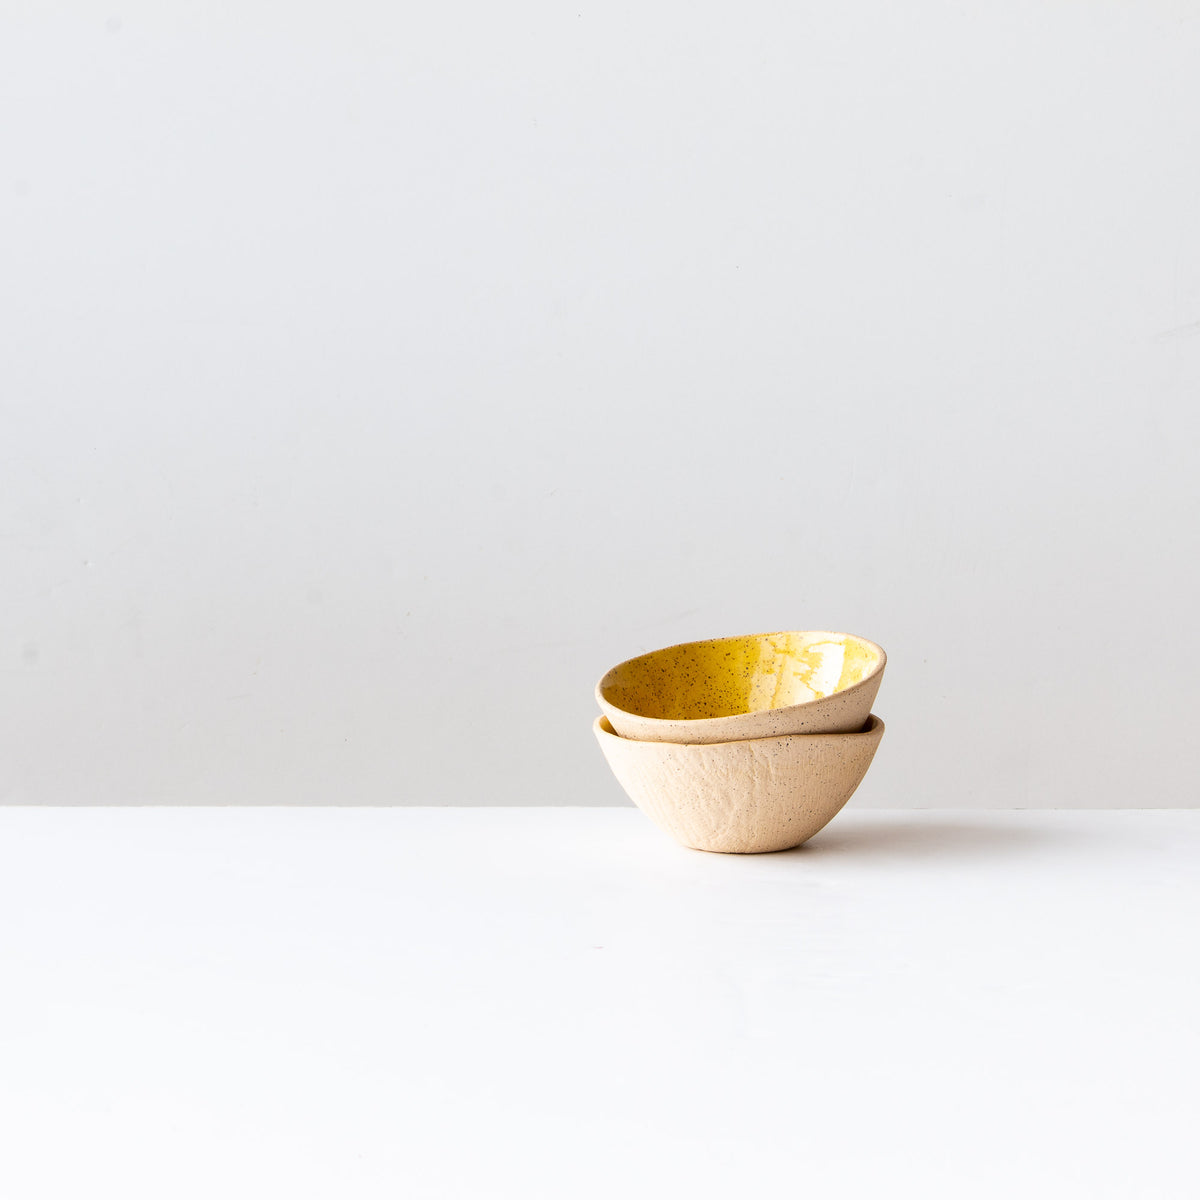 Two Handmade Freckled Ice Cream Bowls in Sandstone Ceramic - Sold by Chic & Basta